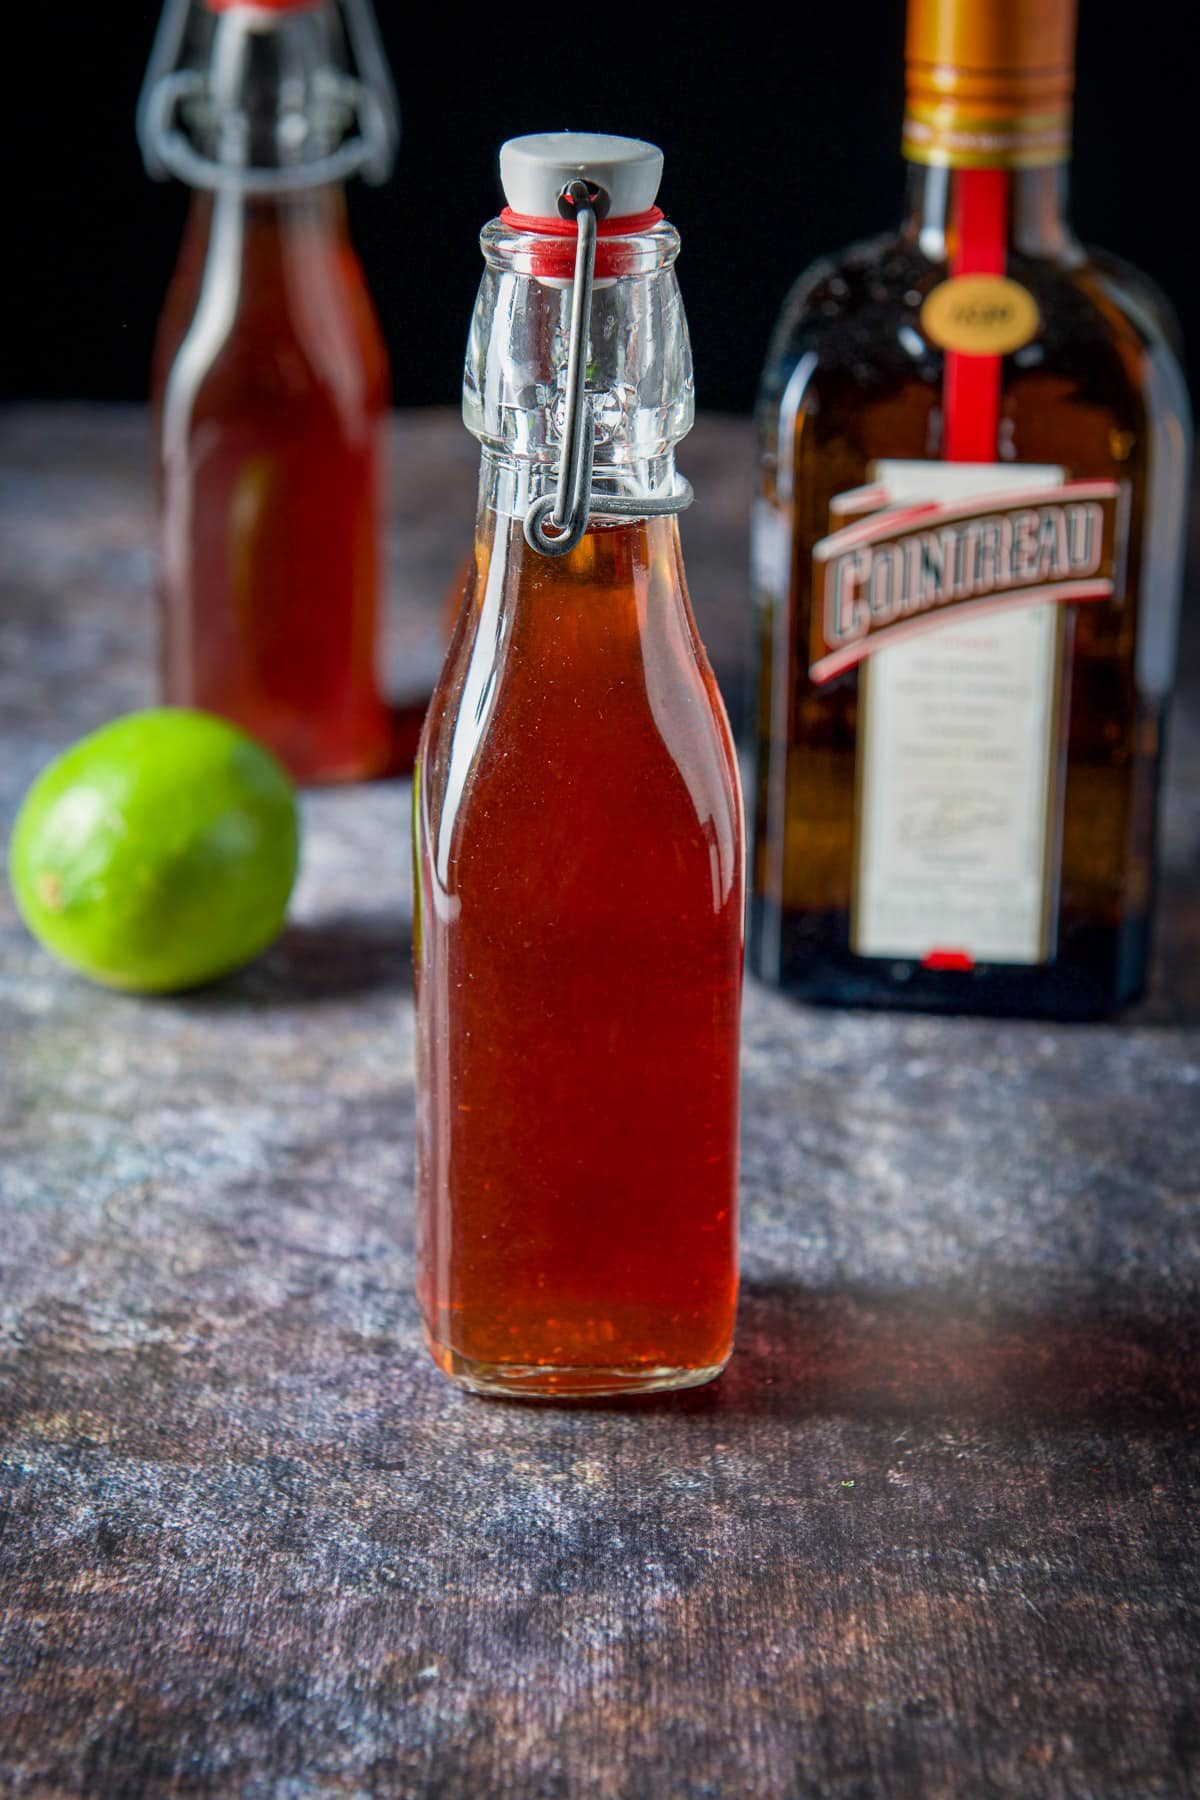 Bottle of strawberry vodka, cointreau and a lime